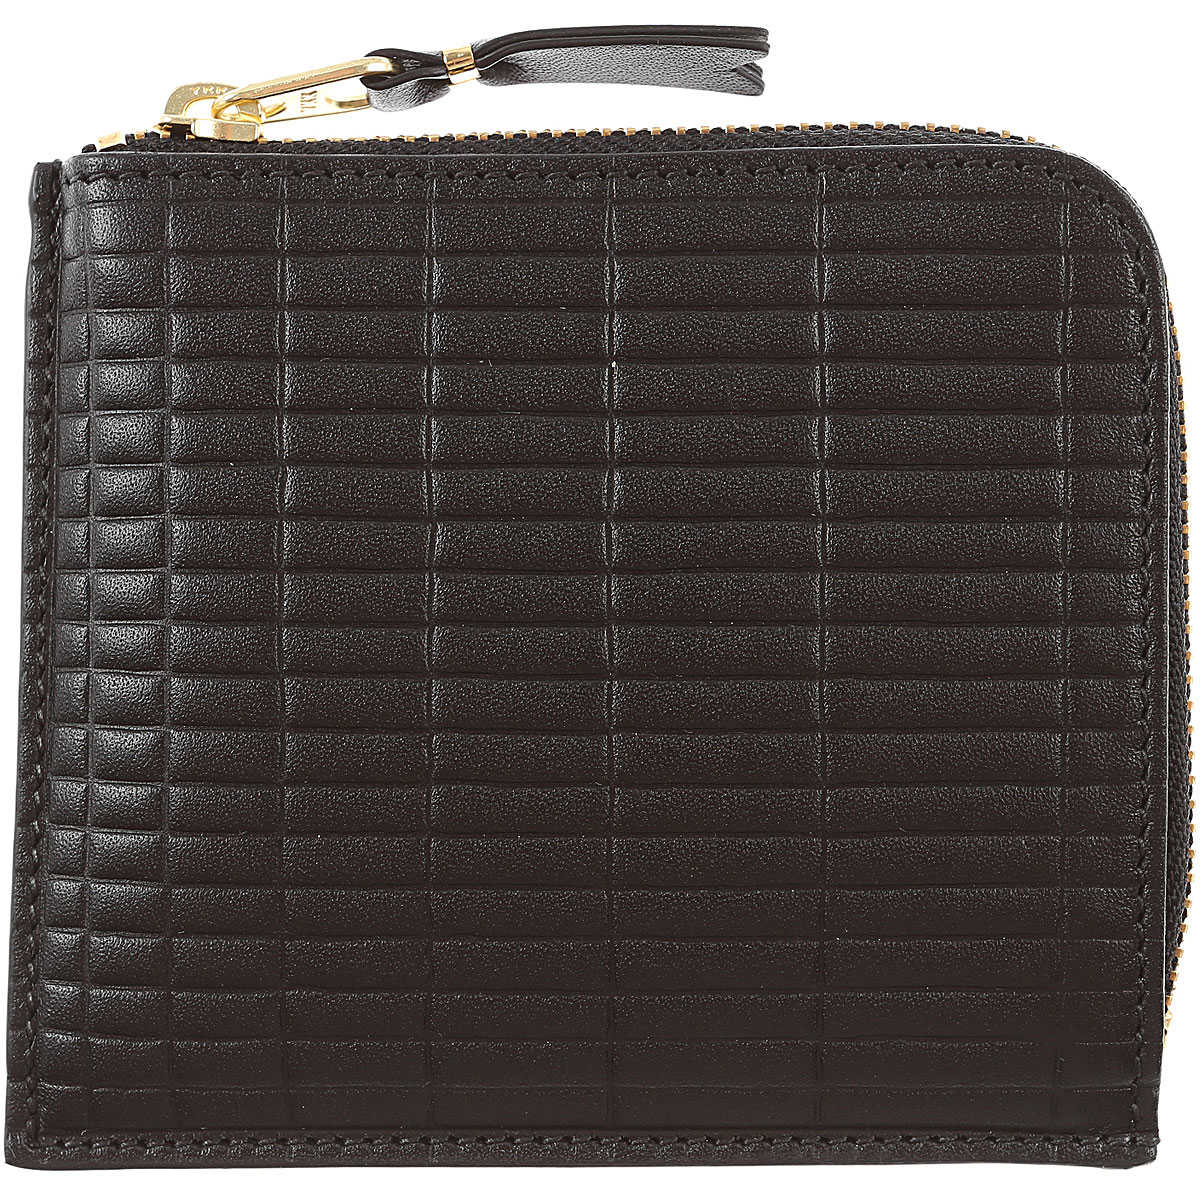 Comme des Garcons Wallet for Men Black SE - GOOFASH